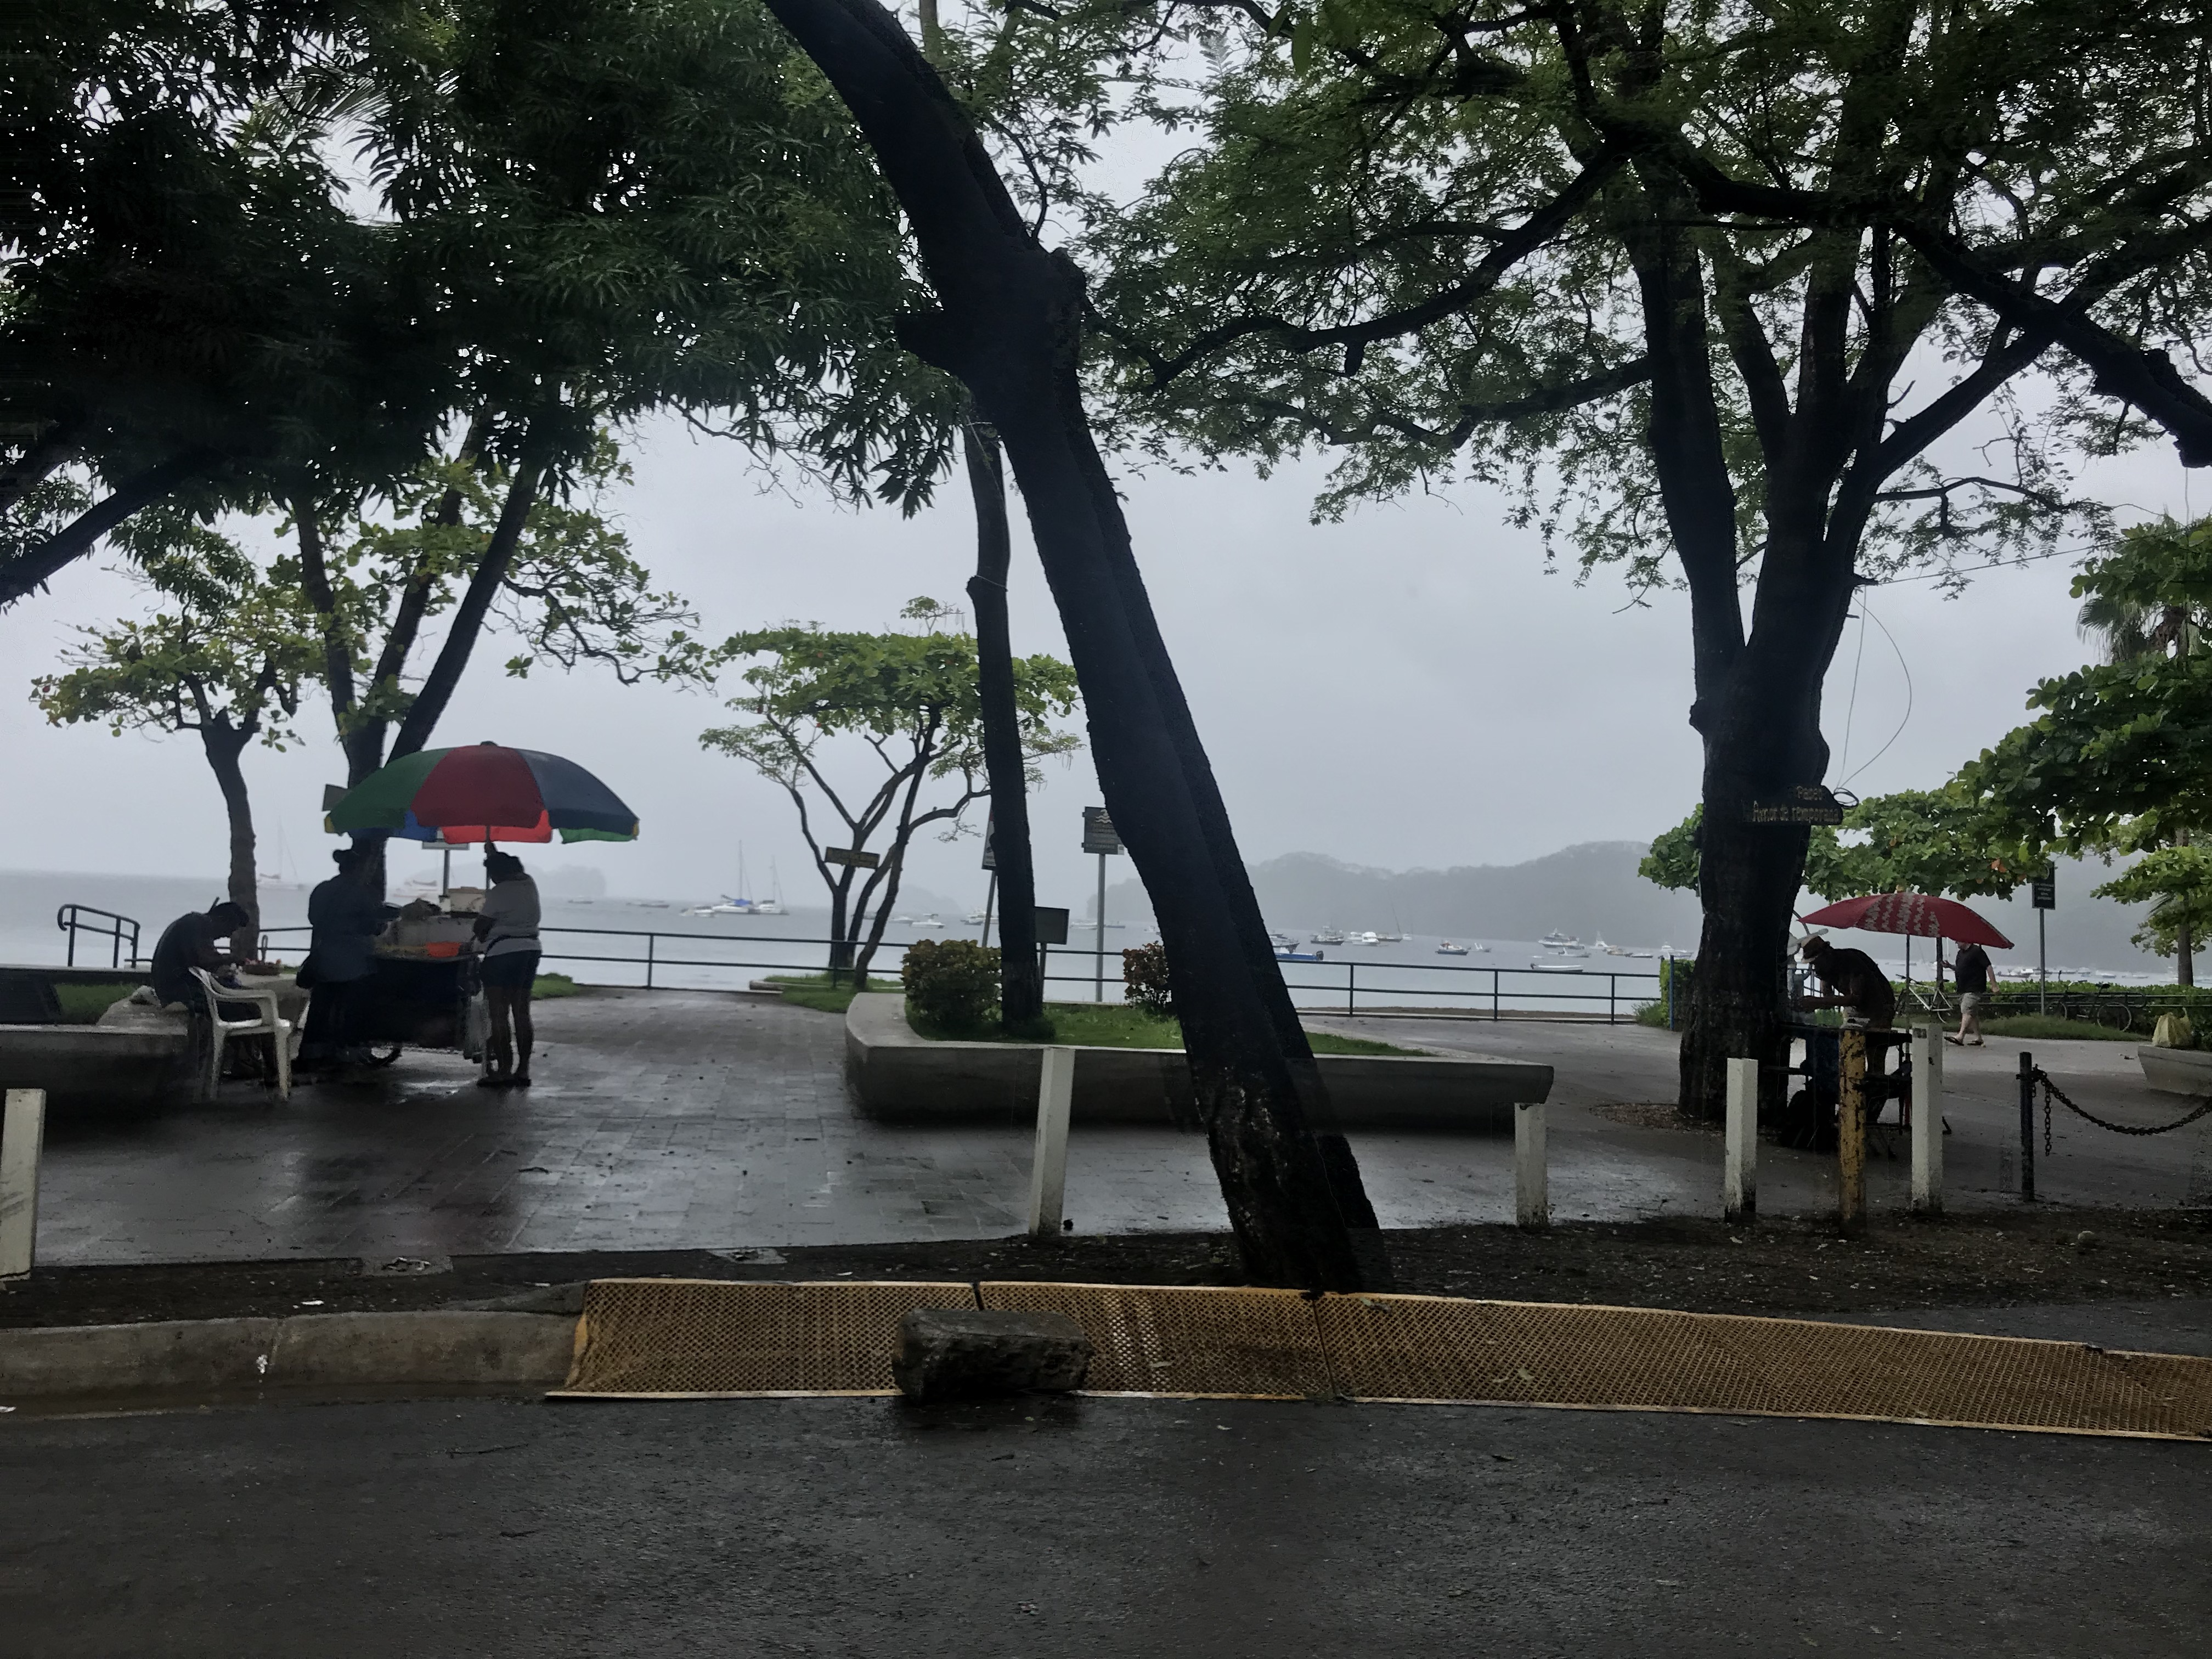 Rainy afternoon on a boardwalk in Costa Rica